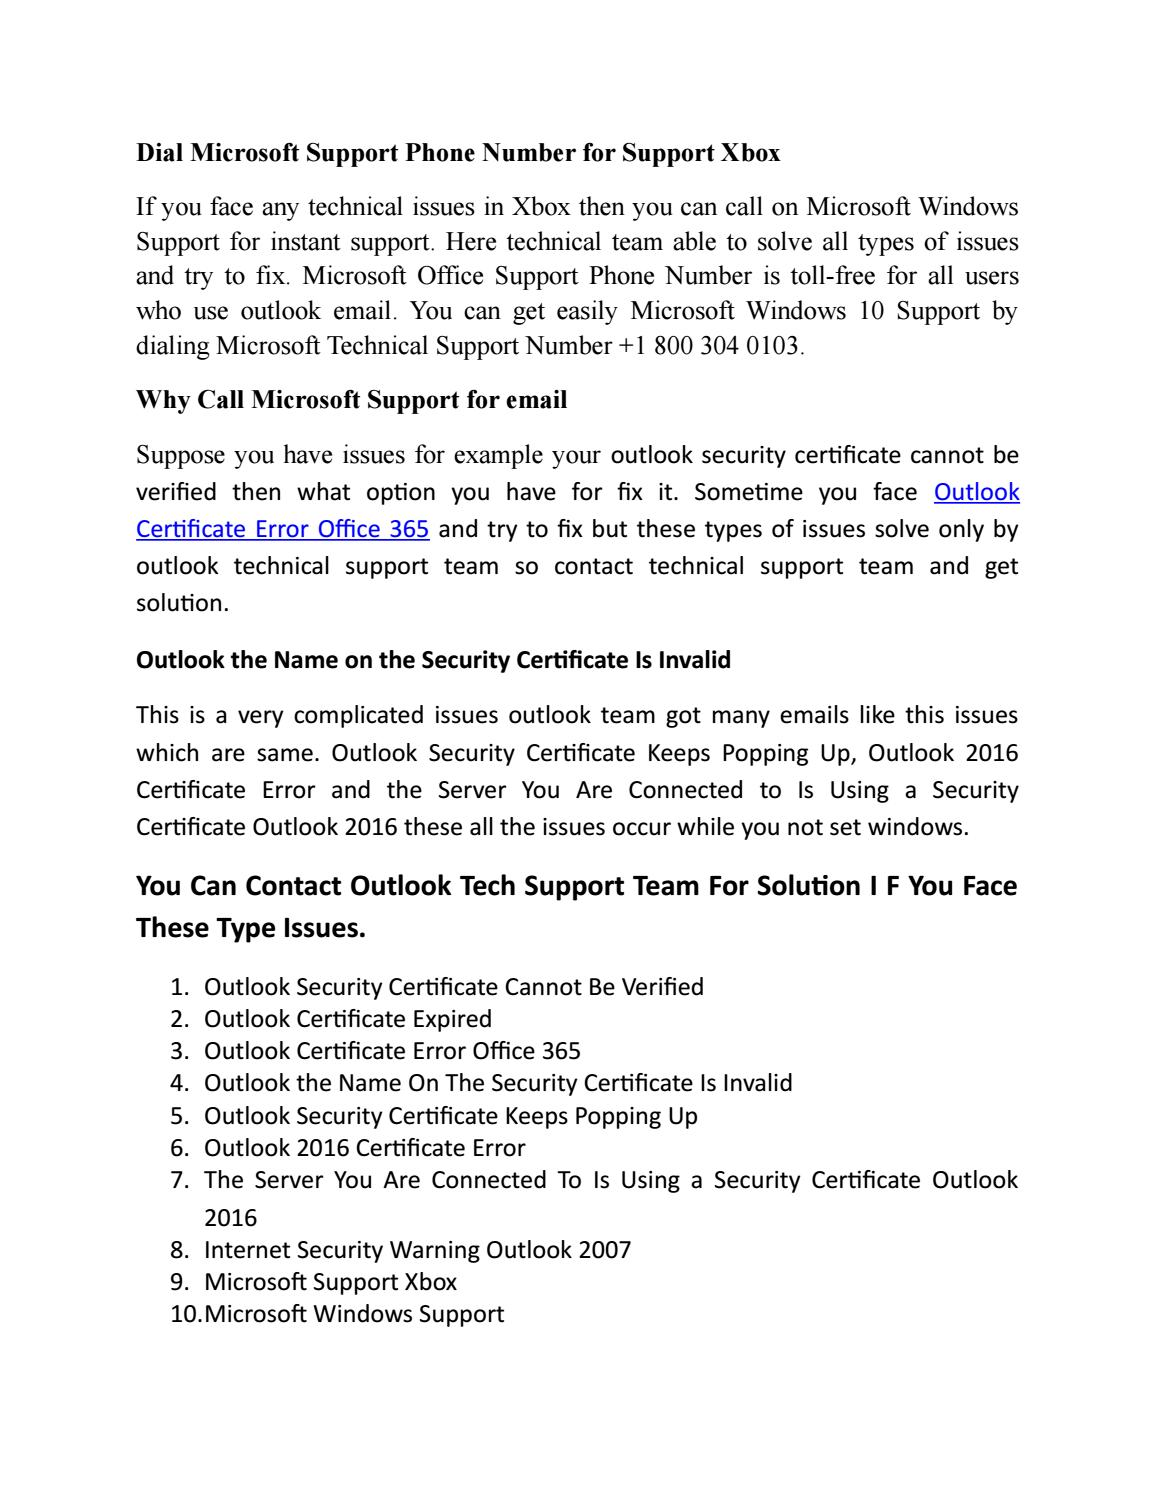 Dial microsoft support phone number for support xbox by mike - issuu